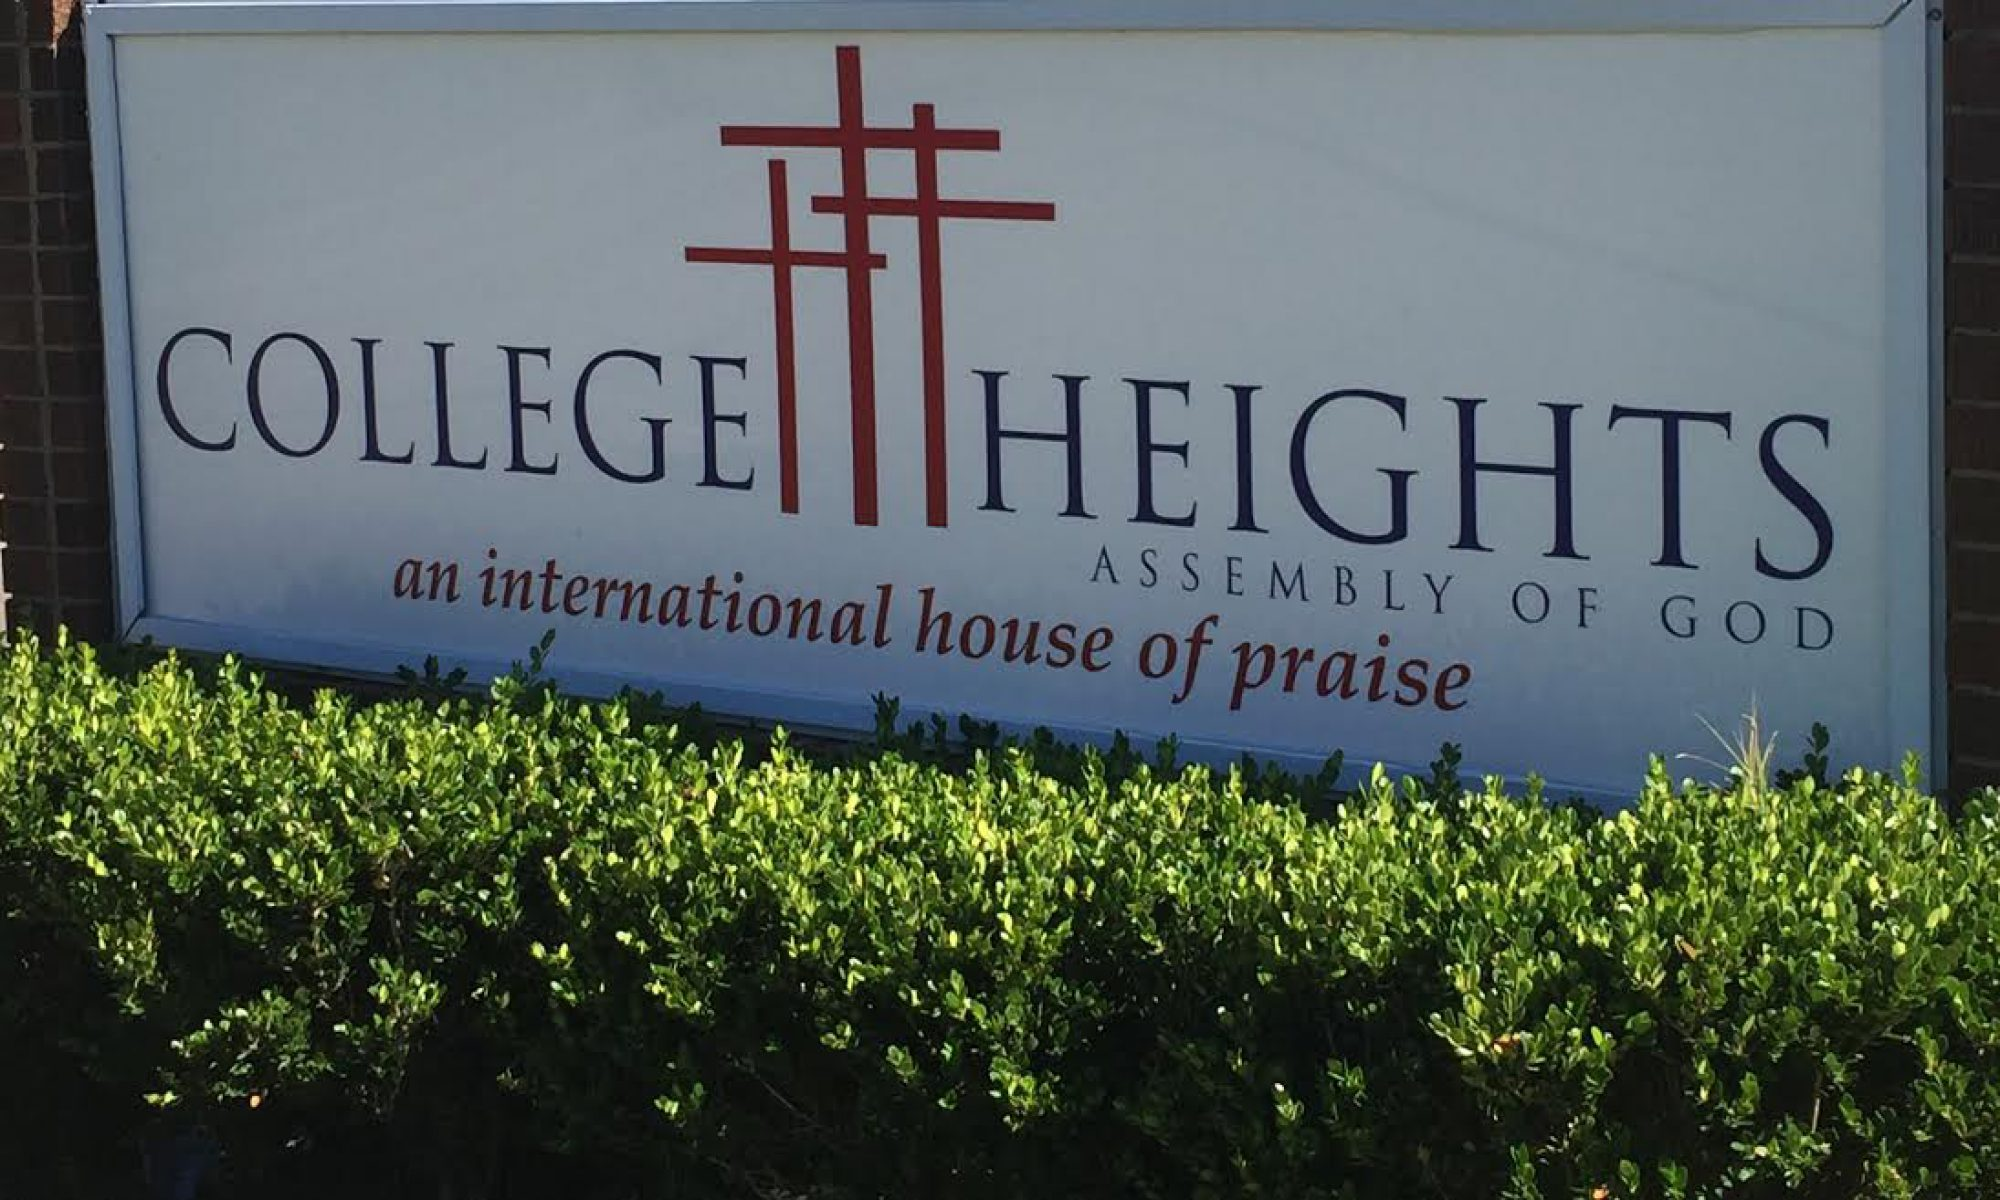 College Heights Assembly of God